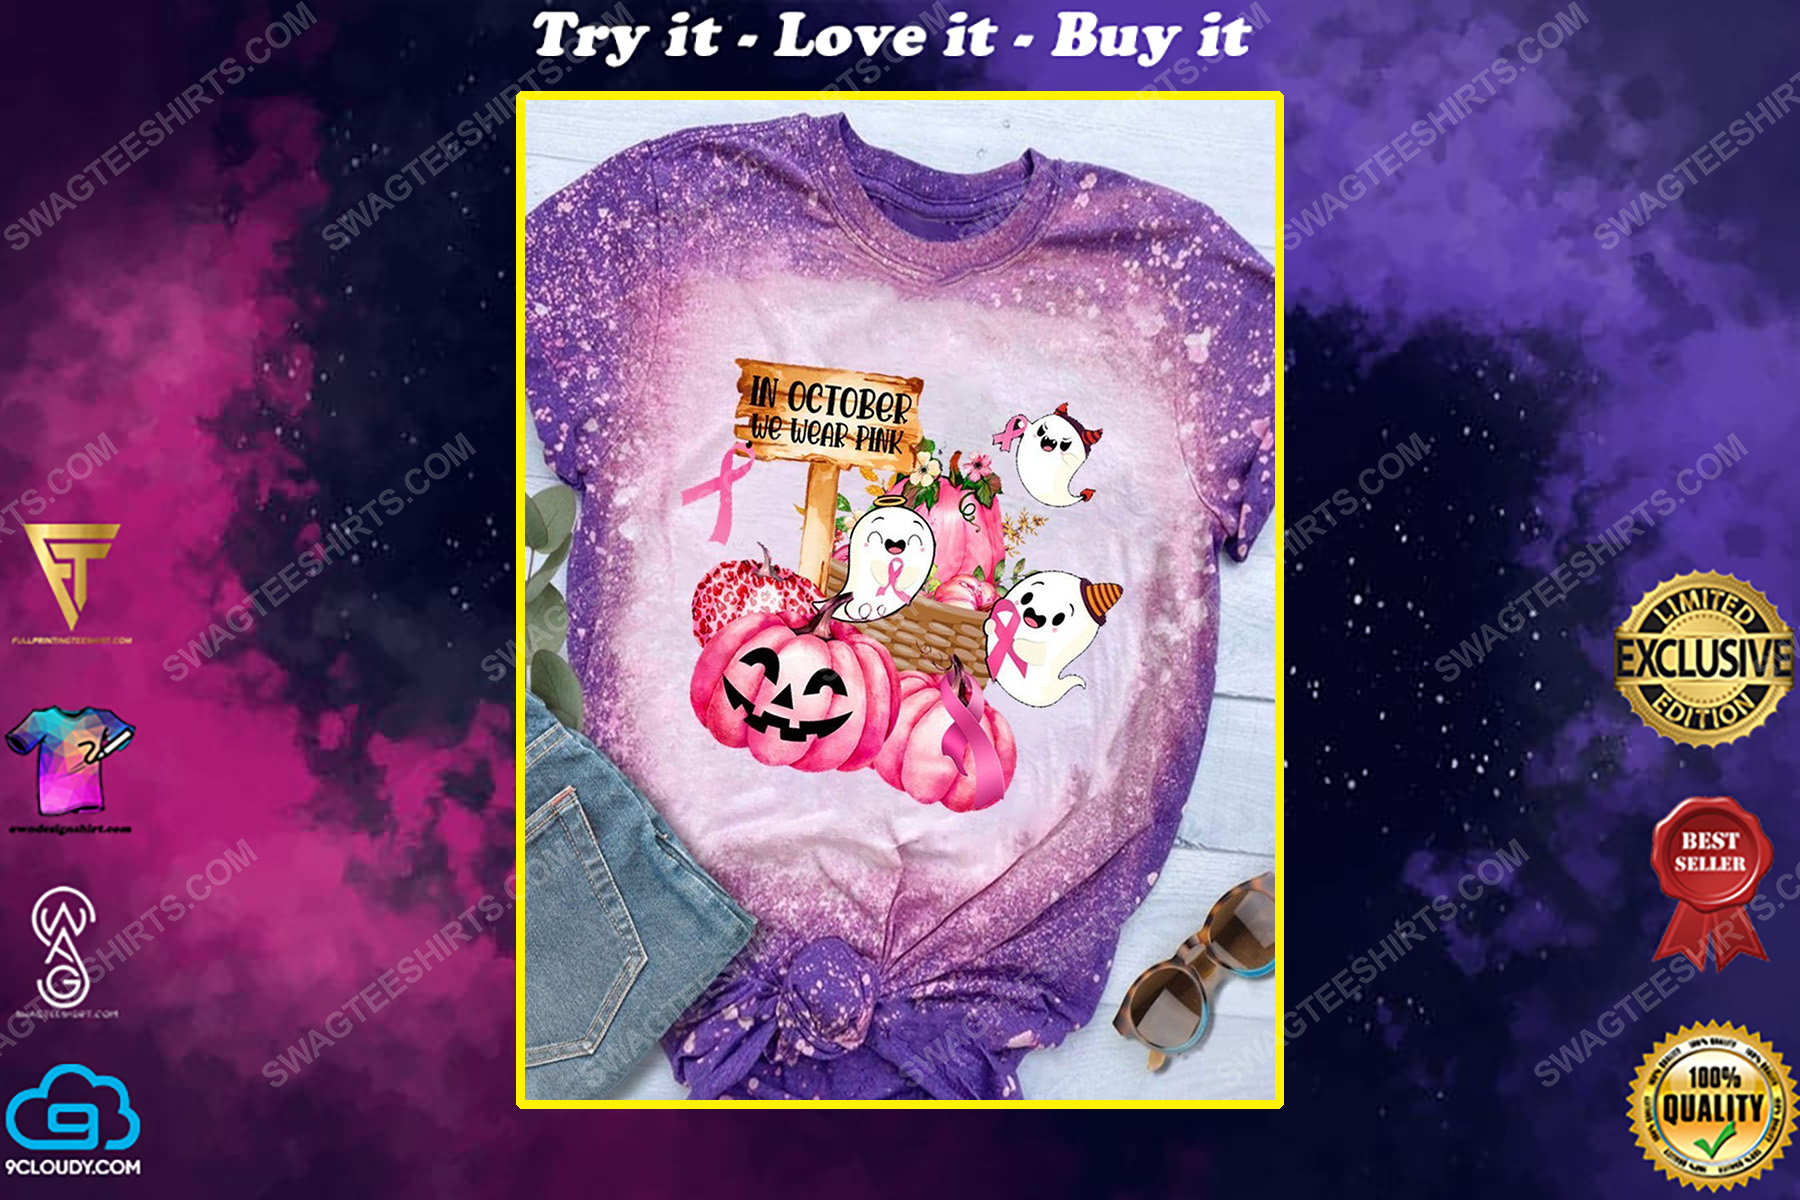 Breast cancer awareness in october we wear pink pumpkin ghost and ribbons bleached shirt